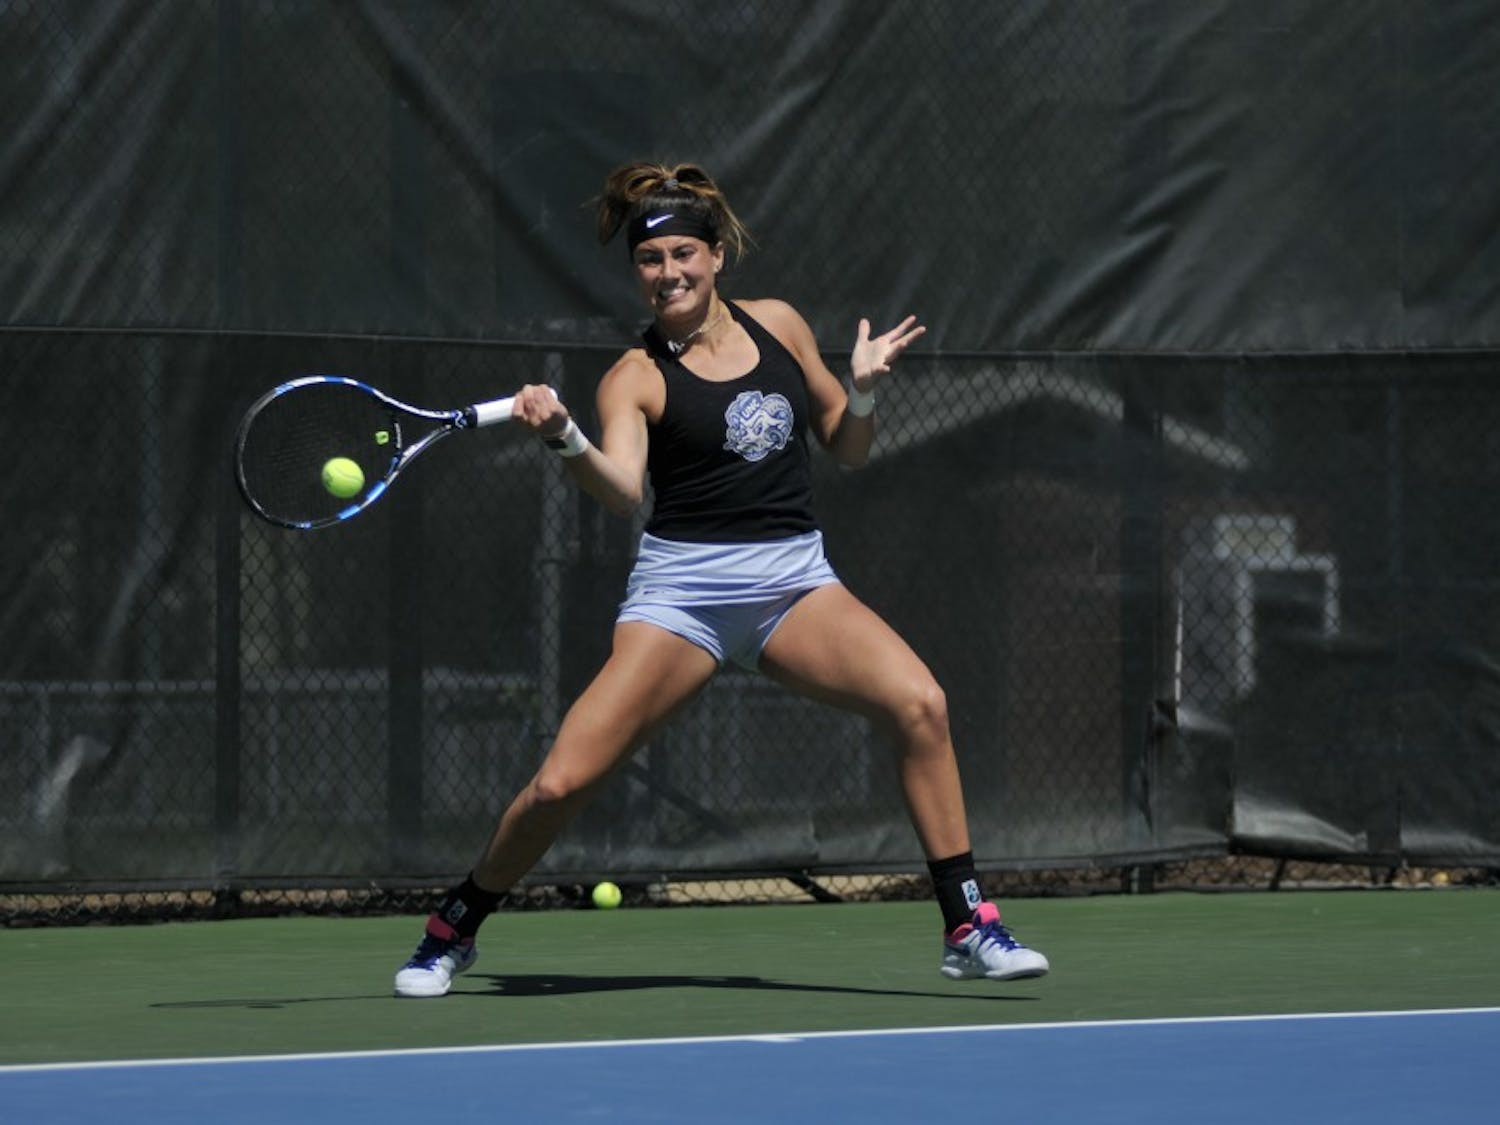 Junior Alexa Graham prepares to hit the ball while playing for the UNC women's tennis match against Miami on Sunday, March 24, 2019 at the Cone-Kenfield Tennis Center. UNC won 4-3. Graham scored the winning point for UNC.